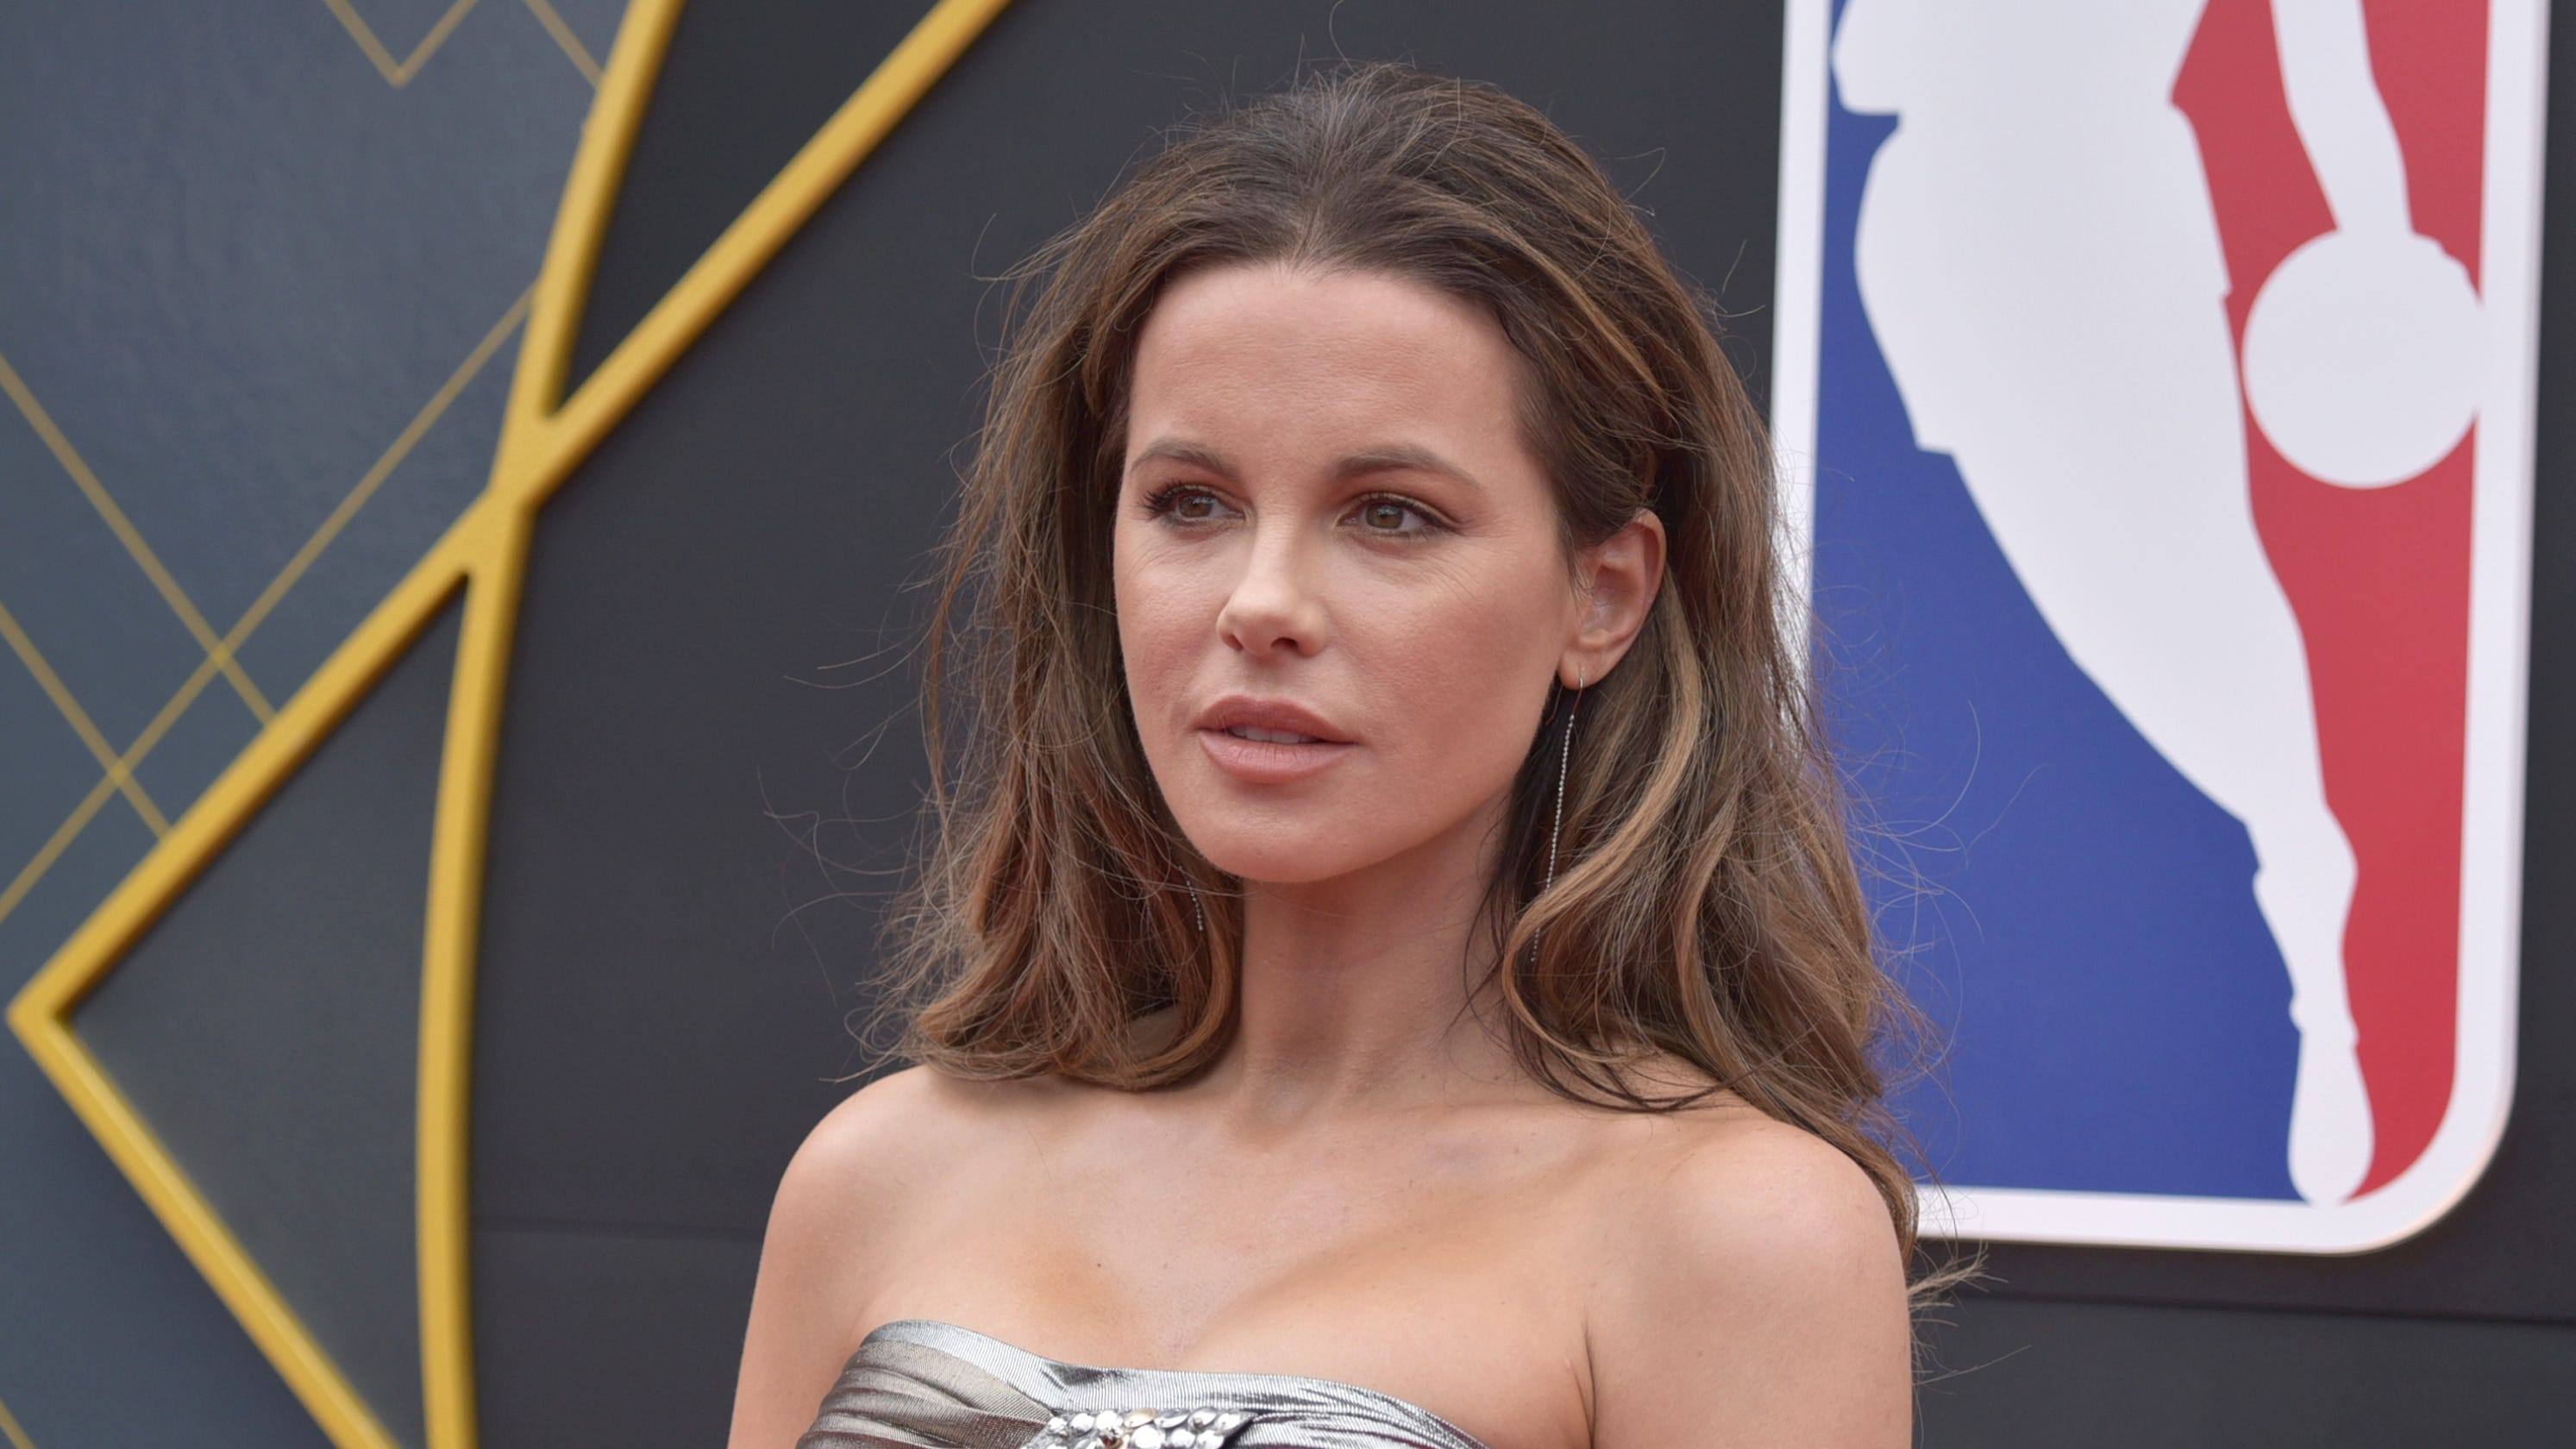 Kate Beckinsale's sexy selfie show's off the 45 year old's